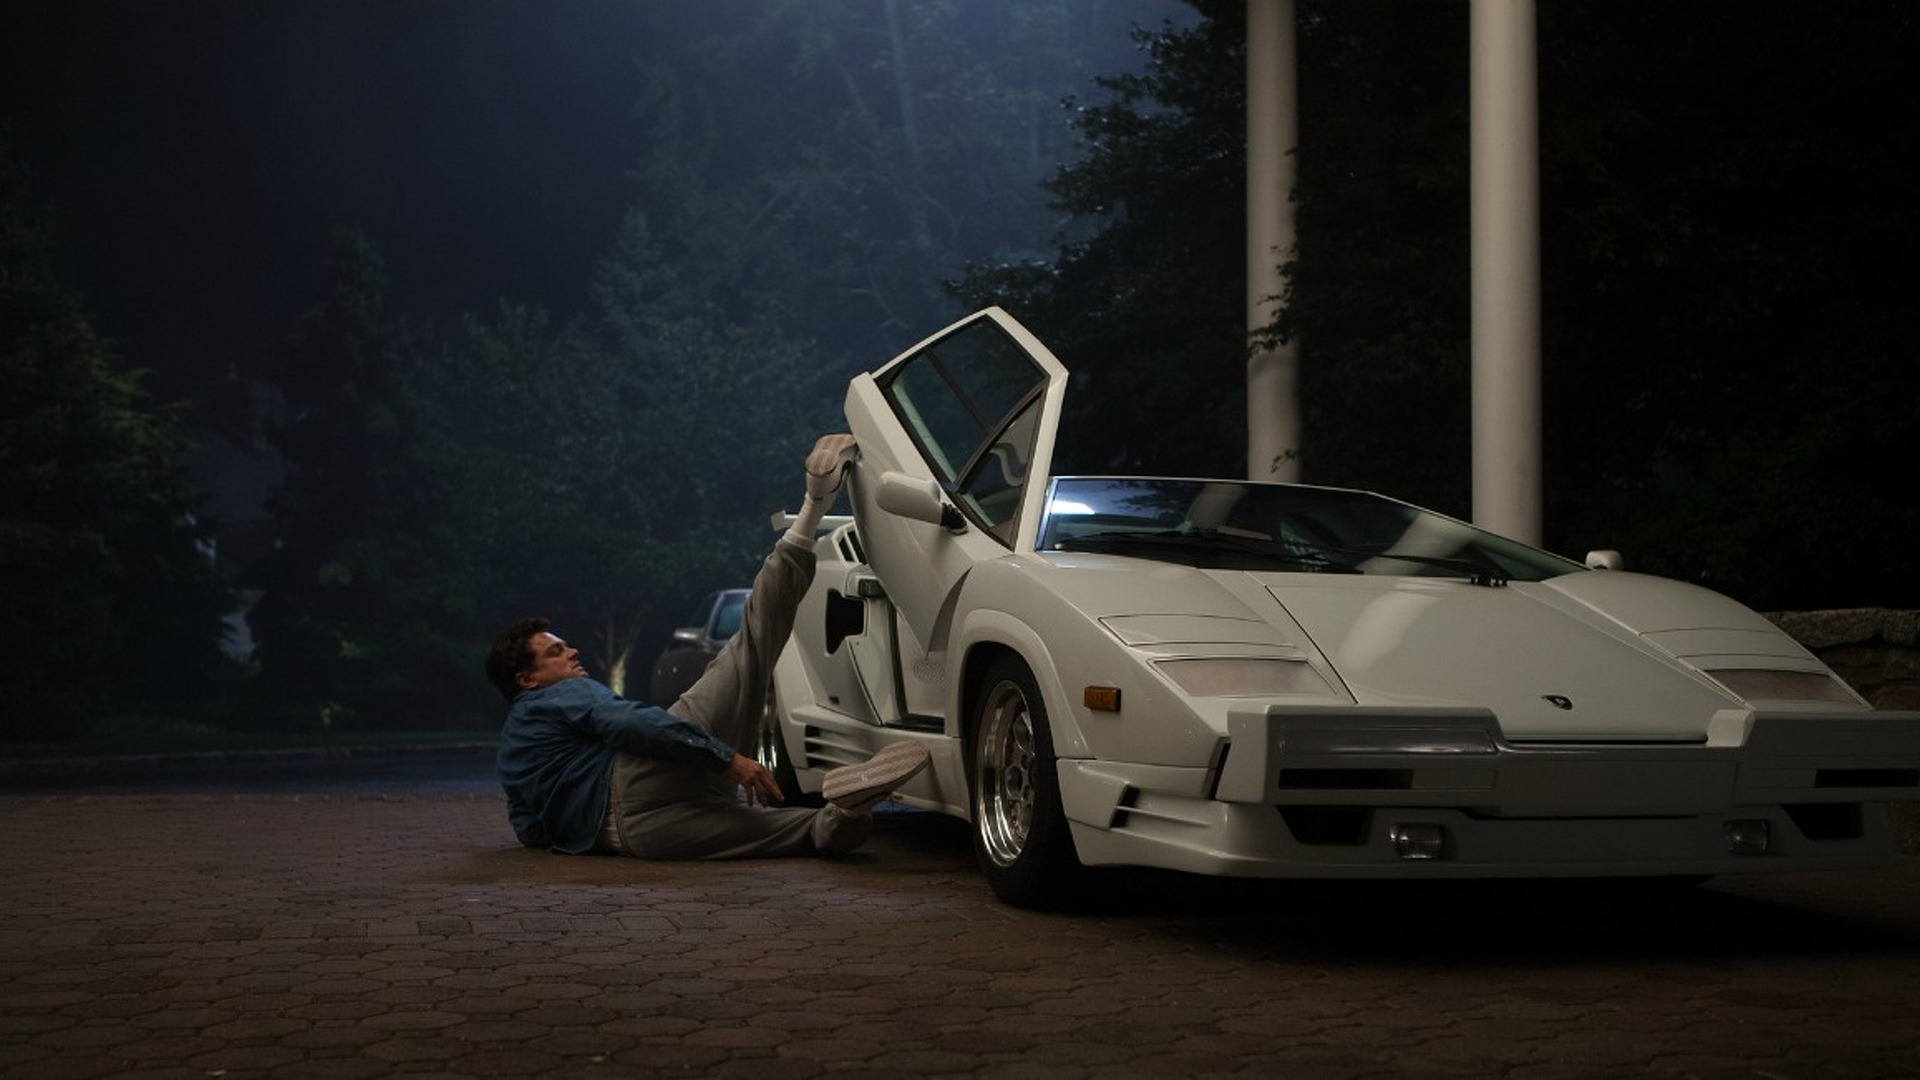 Wolf Of Wall Street Directors Wrecked A Real Lamborghini